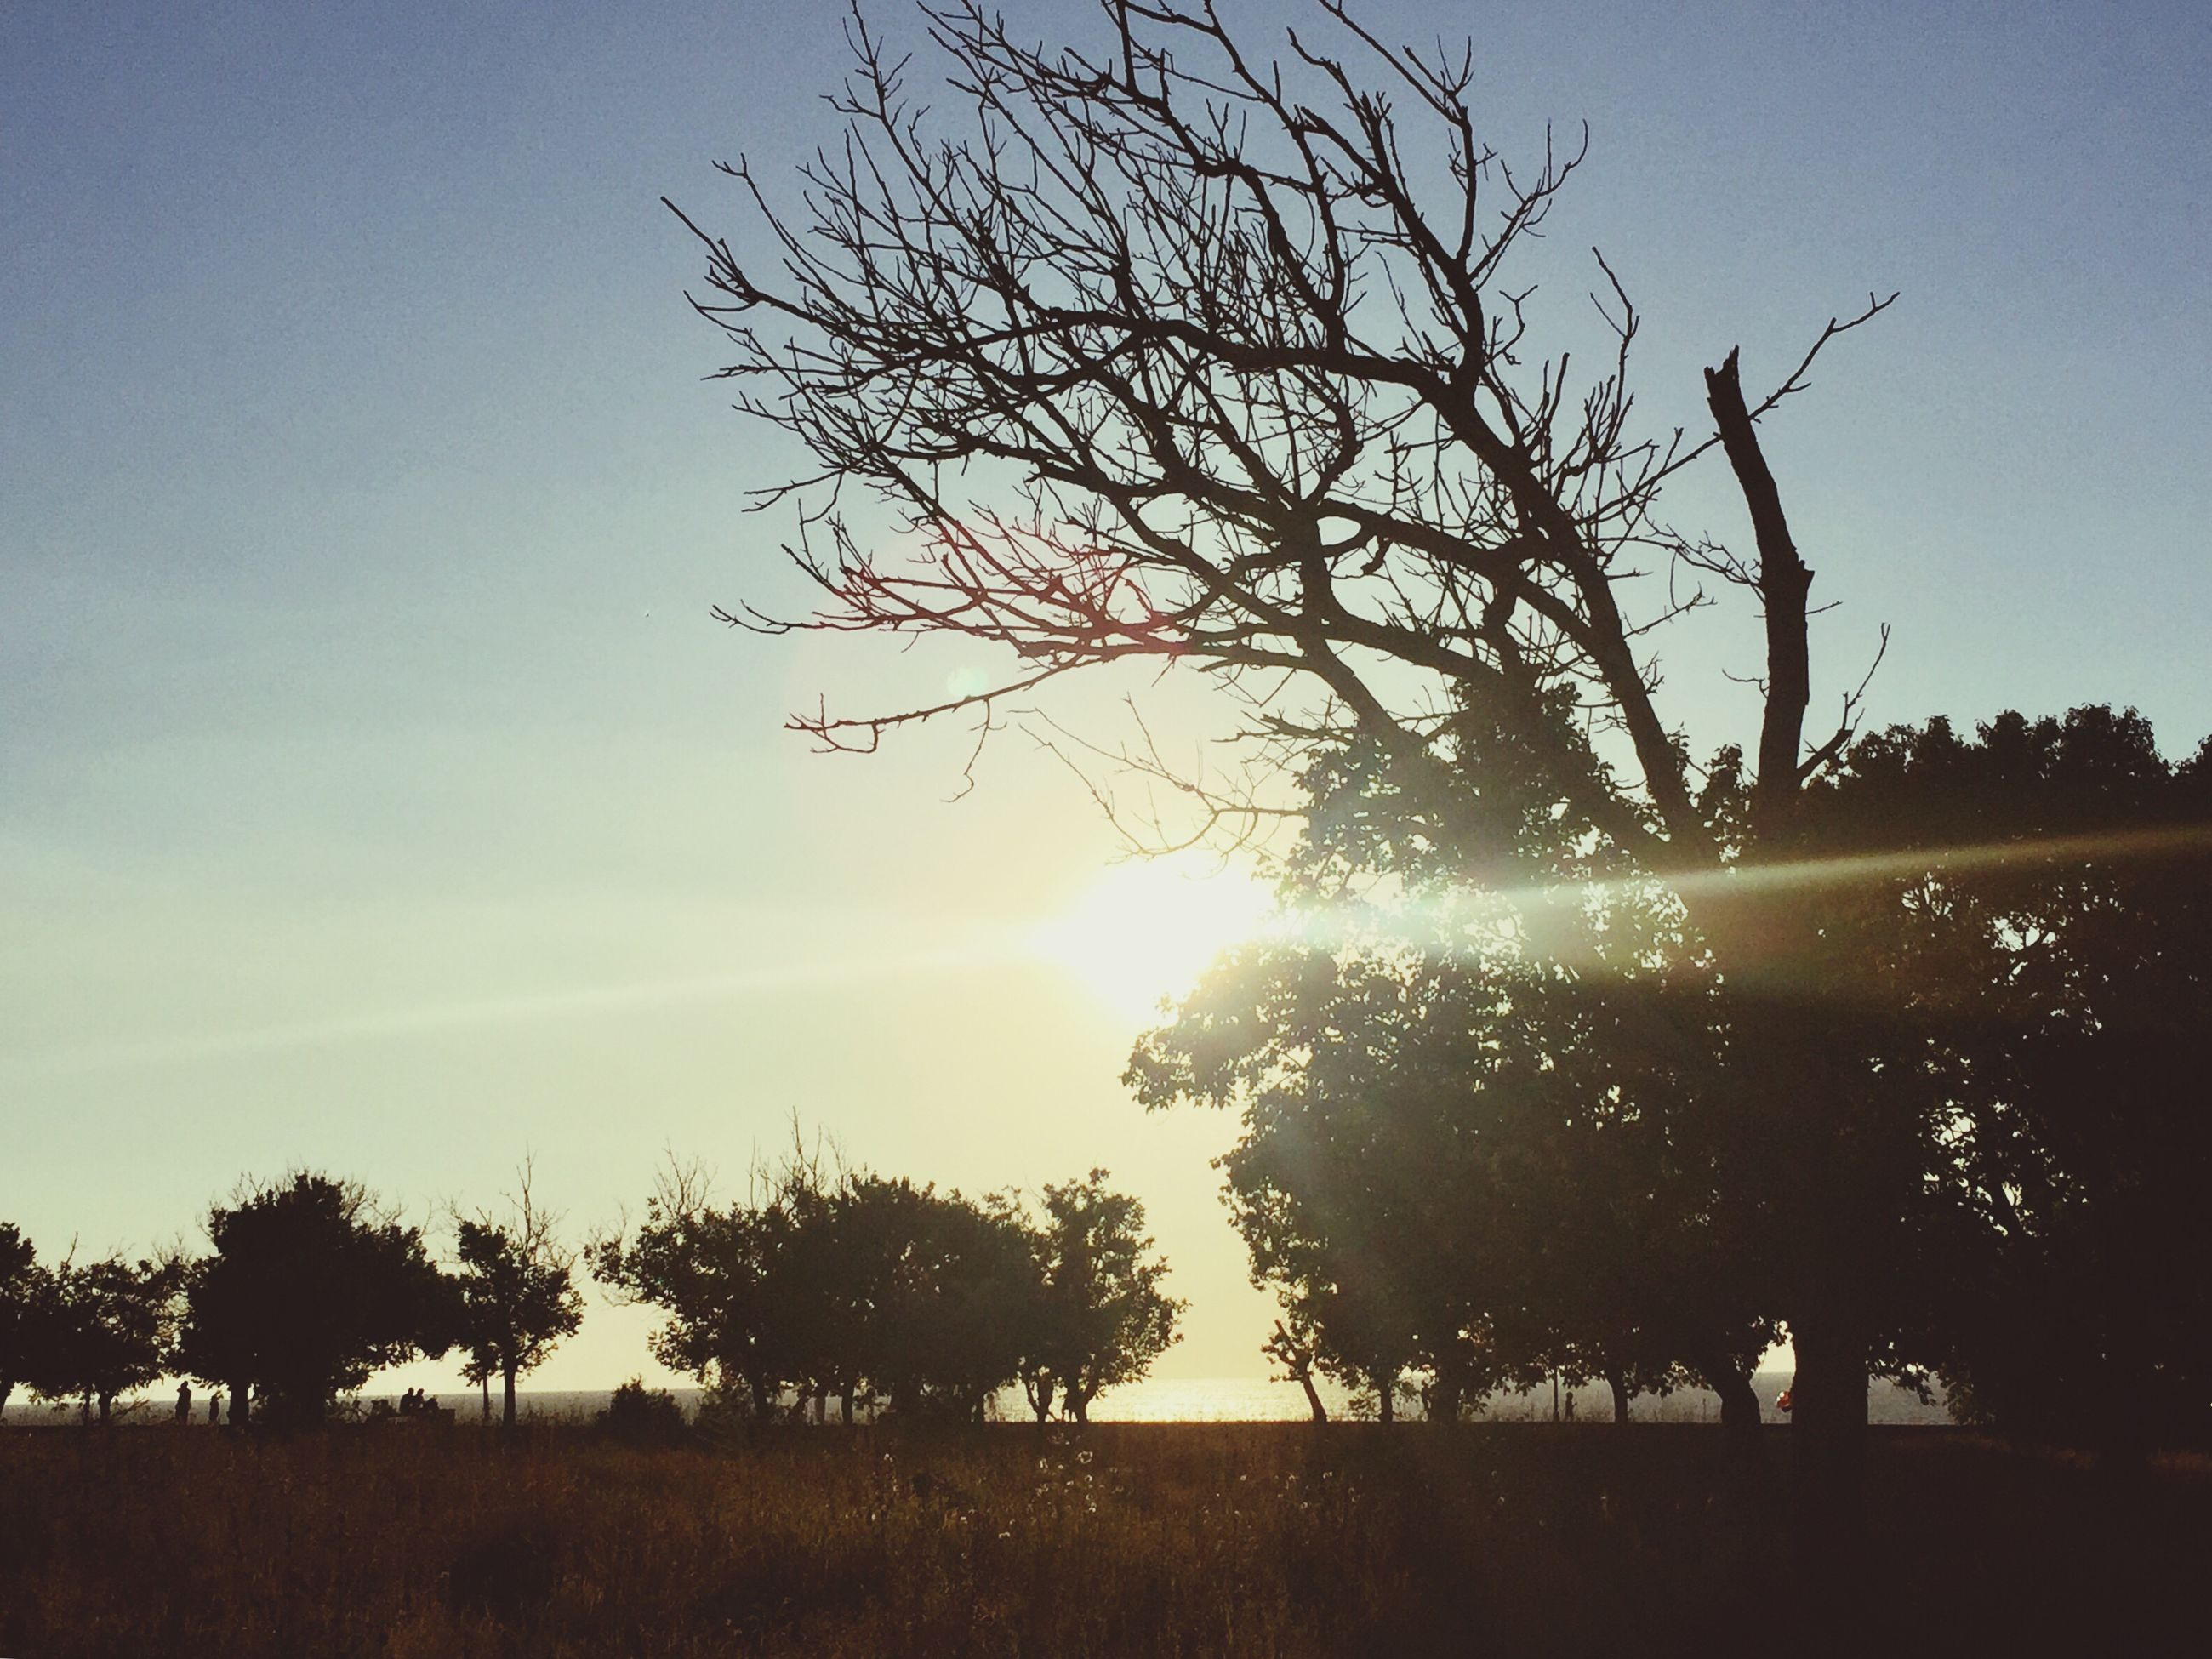 tree, tranquil scene, beauty in nature, tranquility, nature, branch, outdoors, bare tree, landscape, silhouette, scenics, no people, clear sky, growth, tree trunk, sky, day, lone